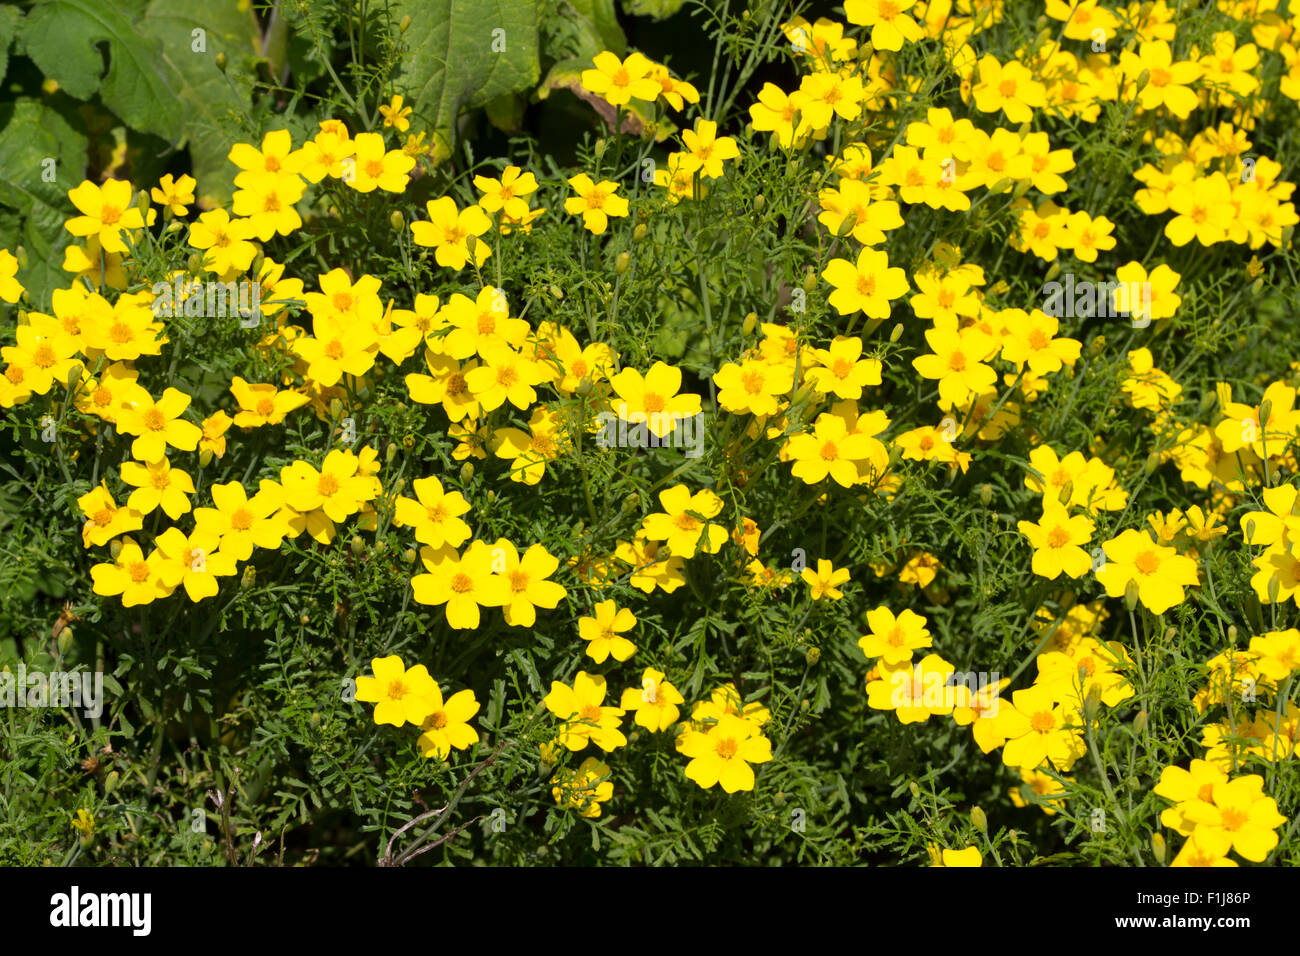 Golden centred yellow flowers of the half hardy perennial bidens golden centred yellow flowers of the half hardy perennial bidens aurea often used as summer bedding mightylinksfo Image collections